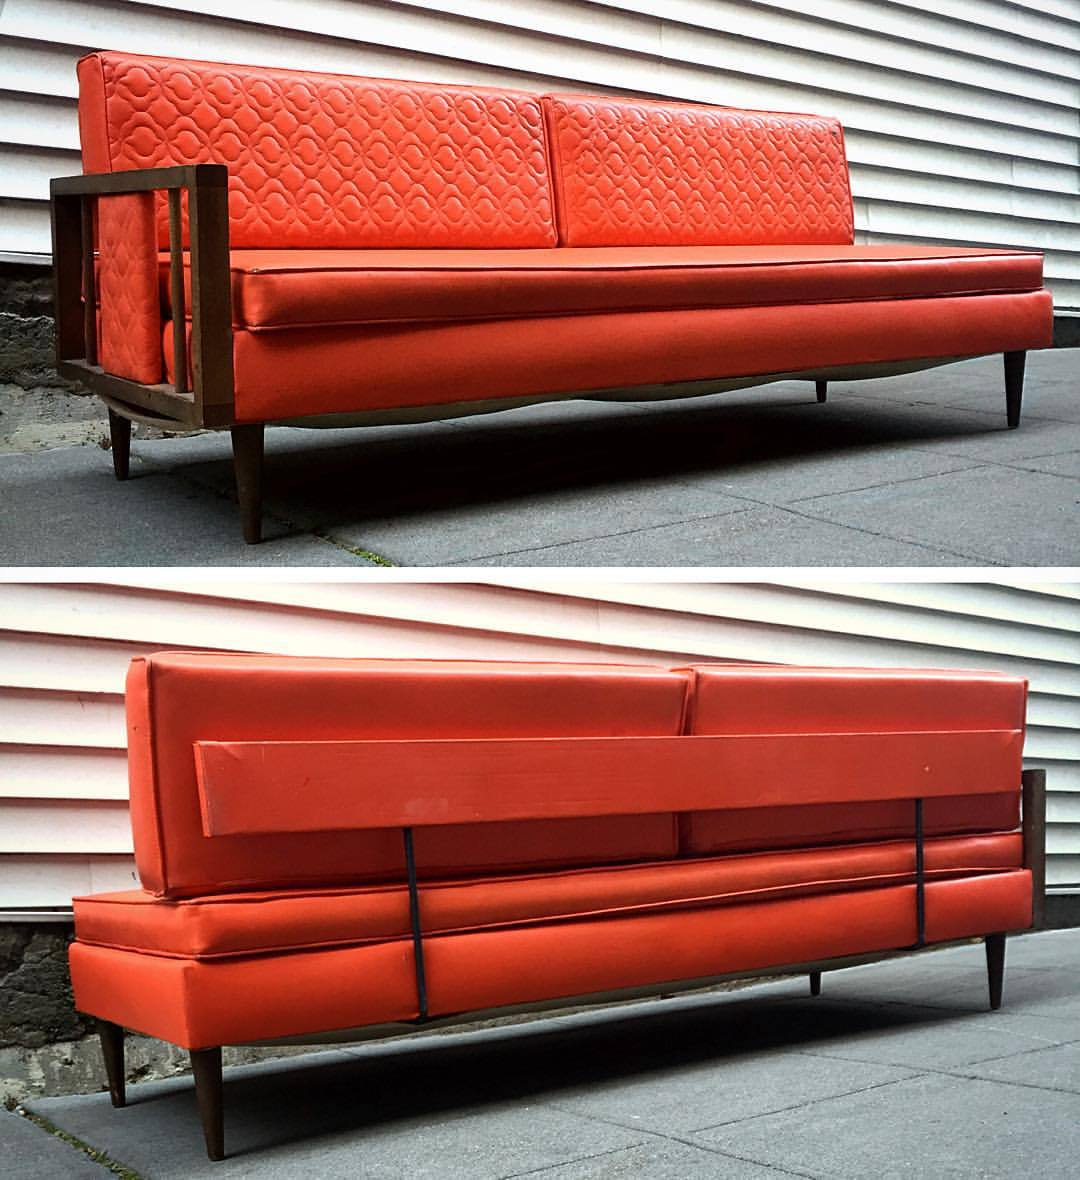 Retro Orange Vinyl Sofa Orange Vinyl Mid-century Daybed / Sofa Sold - Fremont